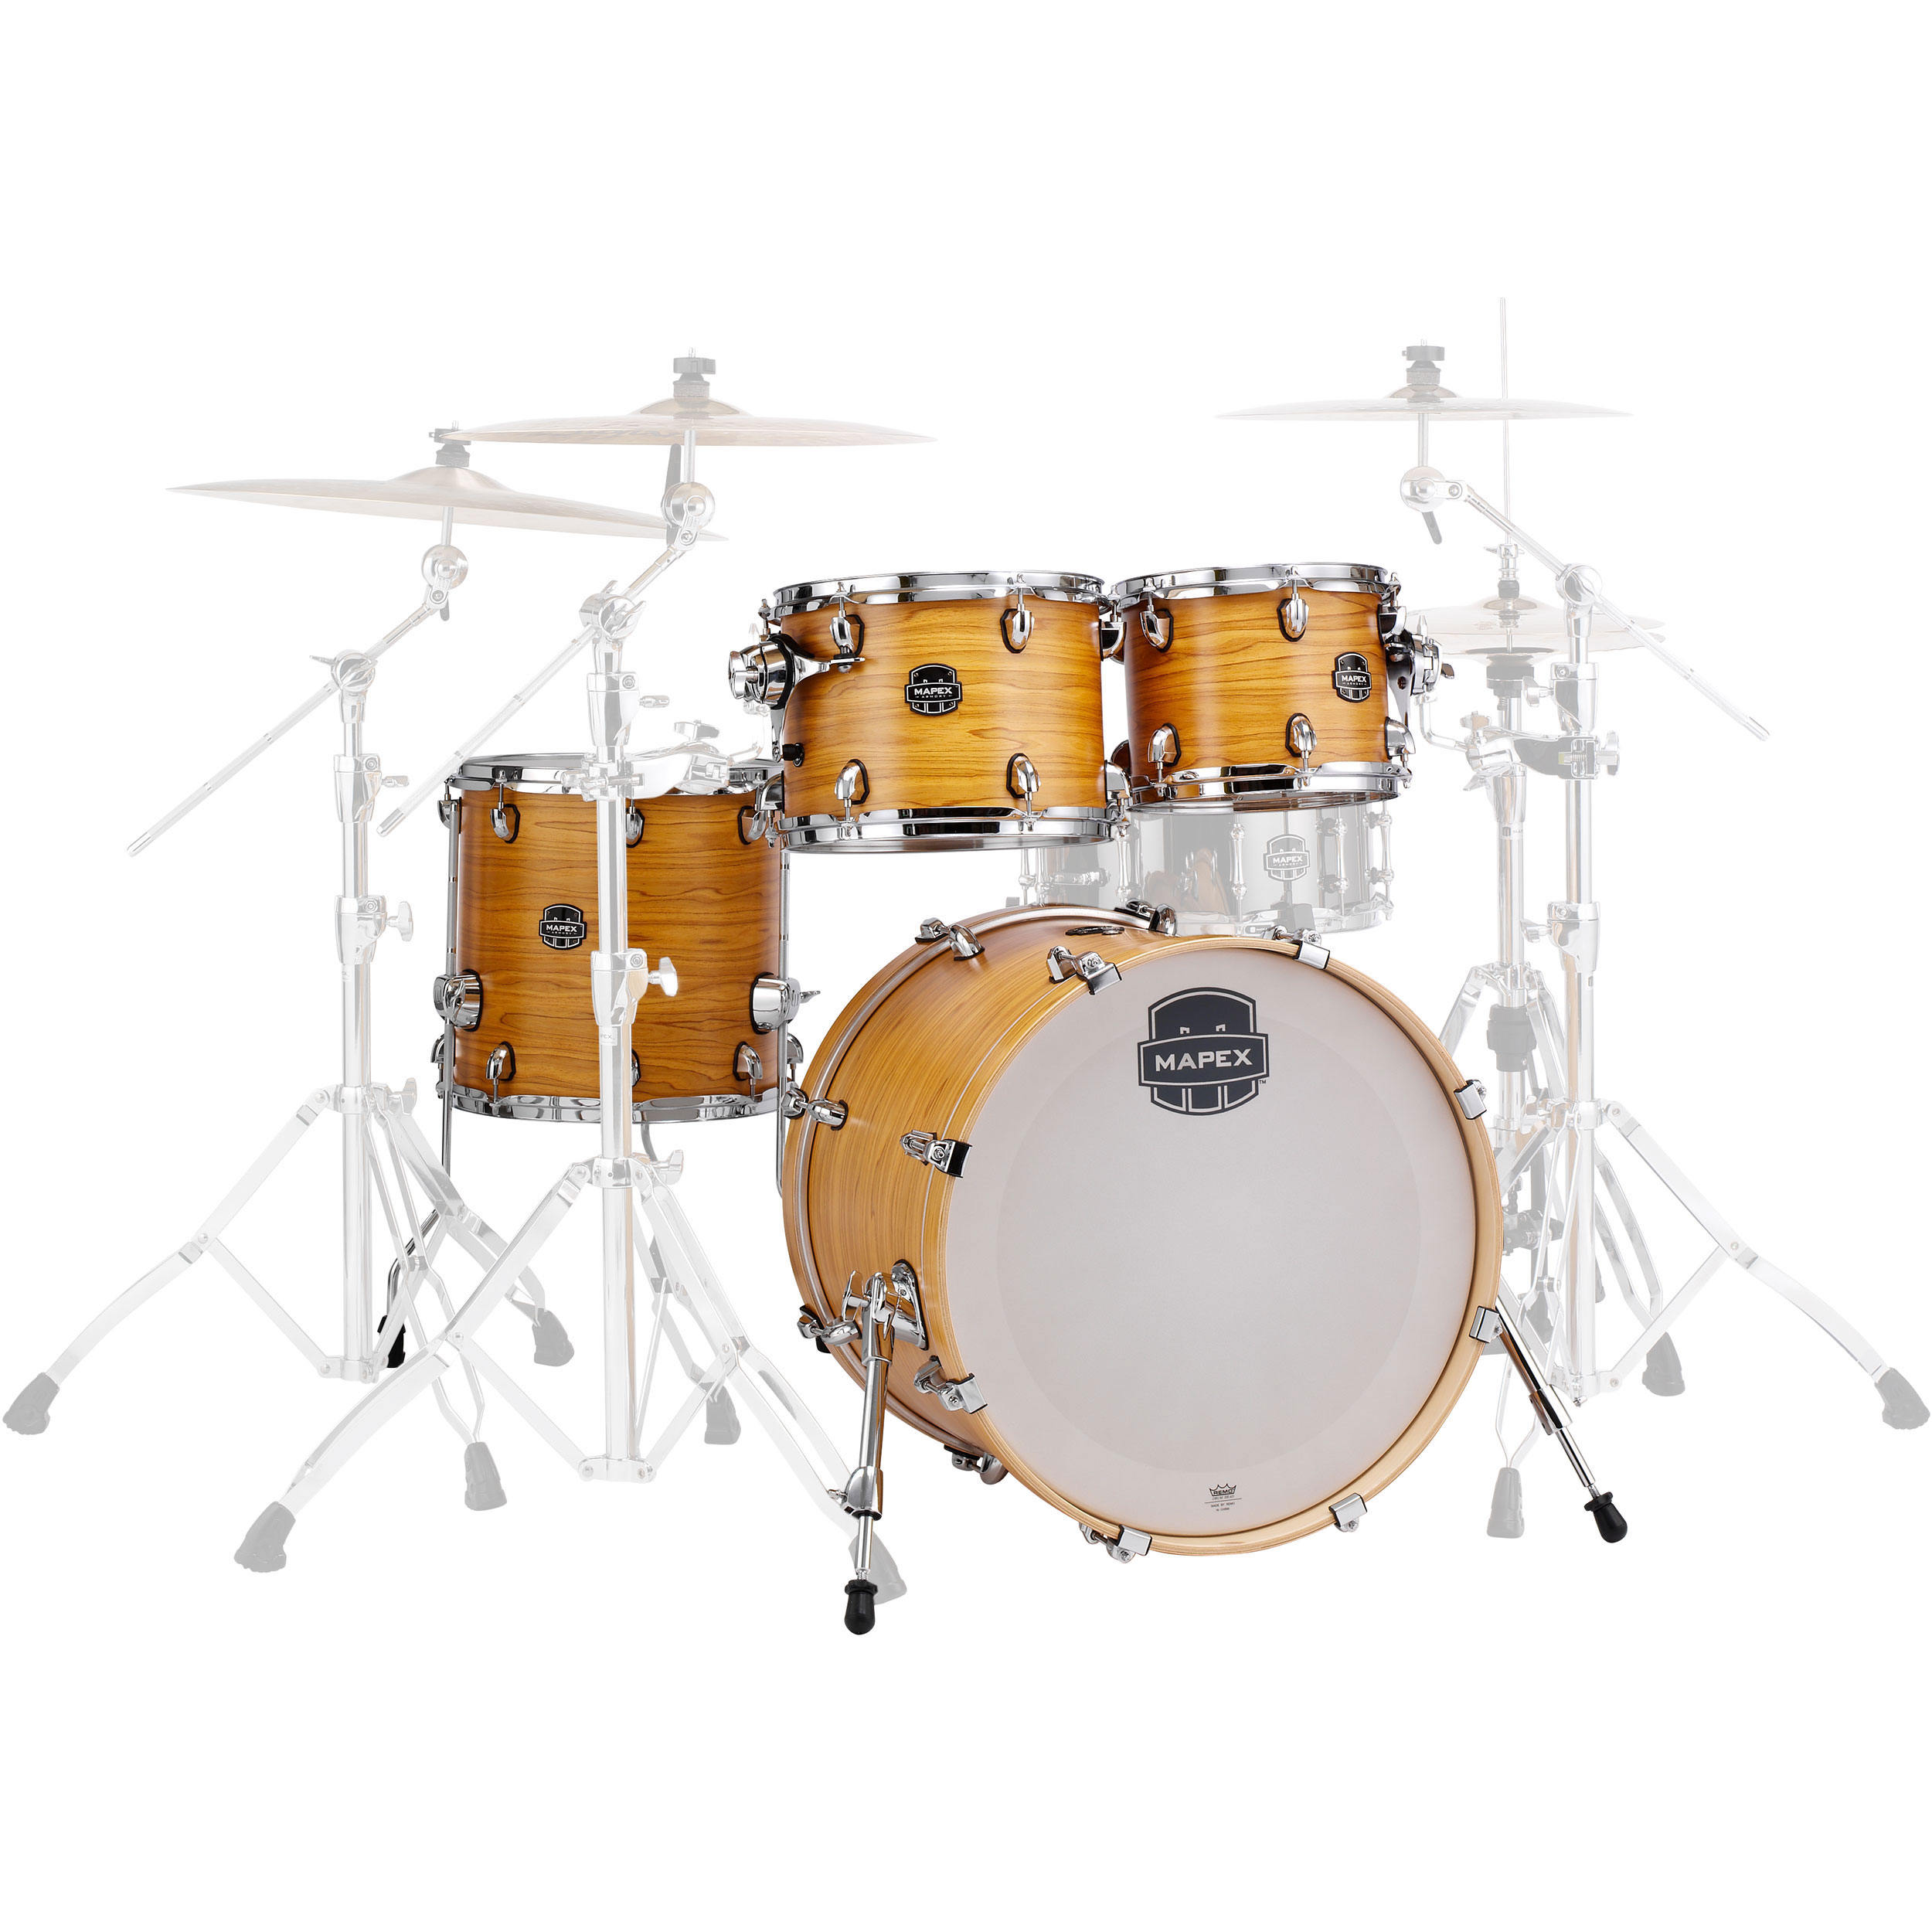 "Mapex Armory 5-Piece Fusion Drum Set Shell Pack (20"" Bass, 10/12/14"" Toms, 14"" Snare)"